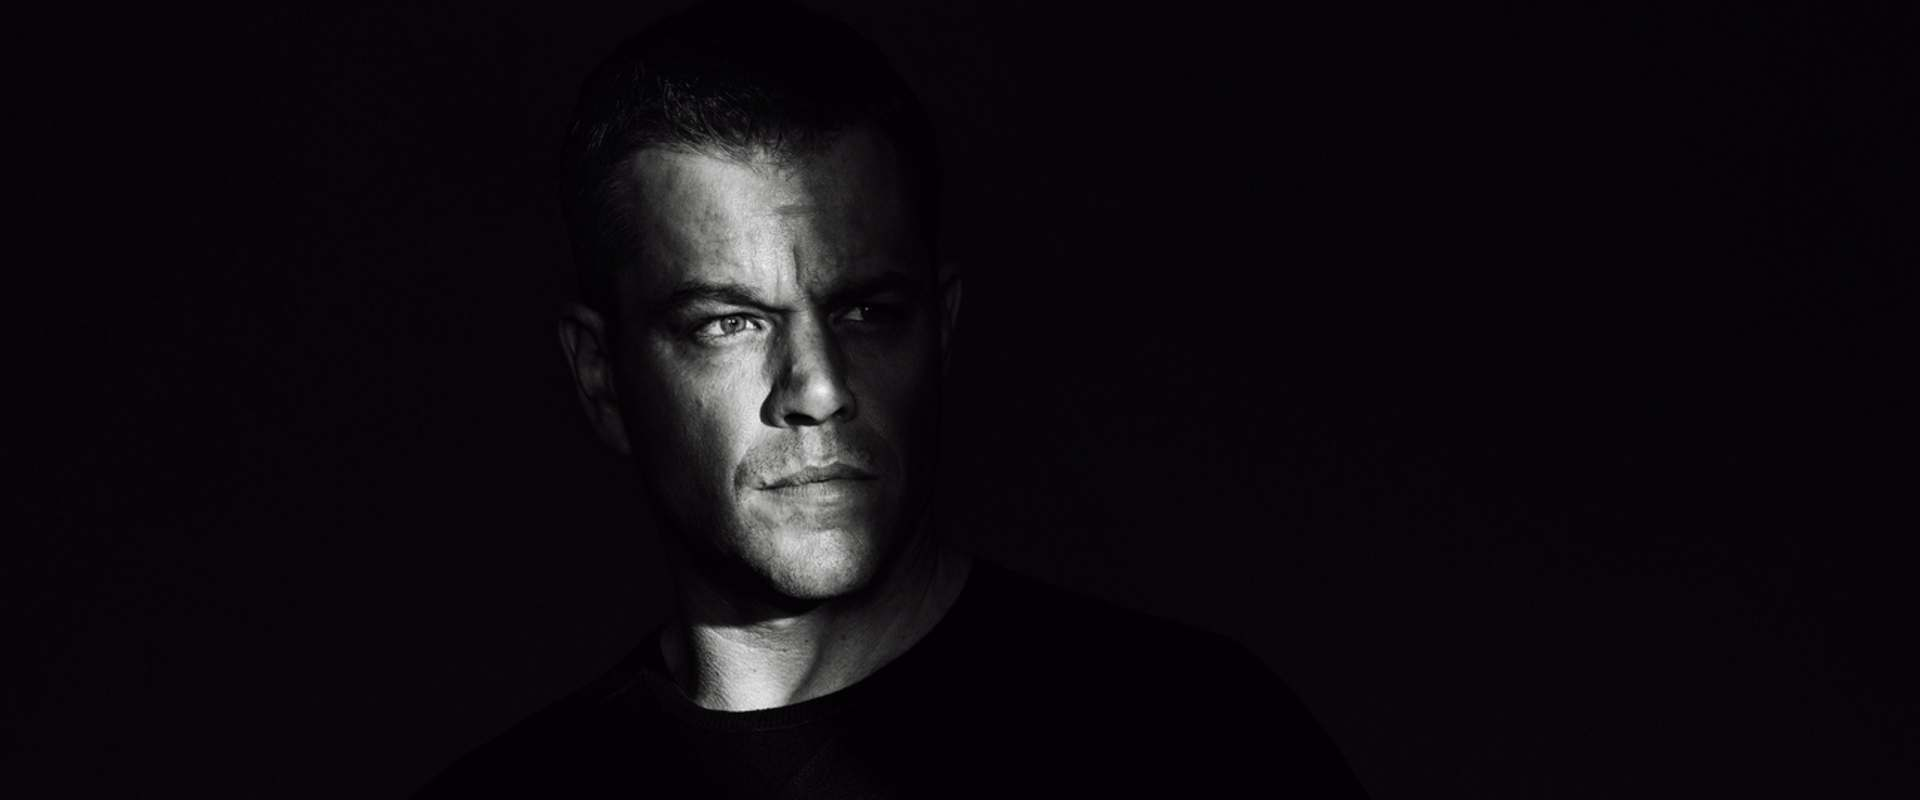 Jason Bourne background 1